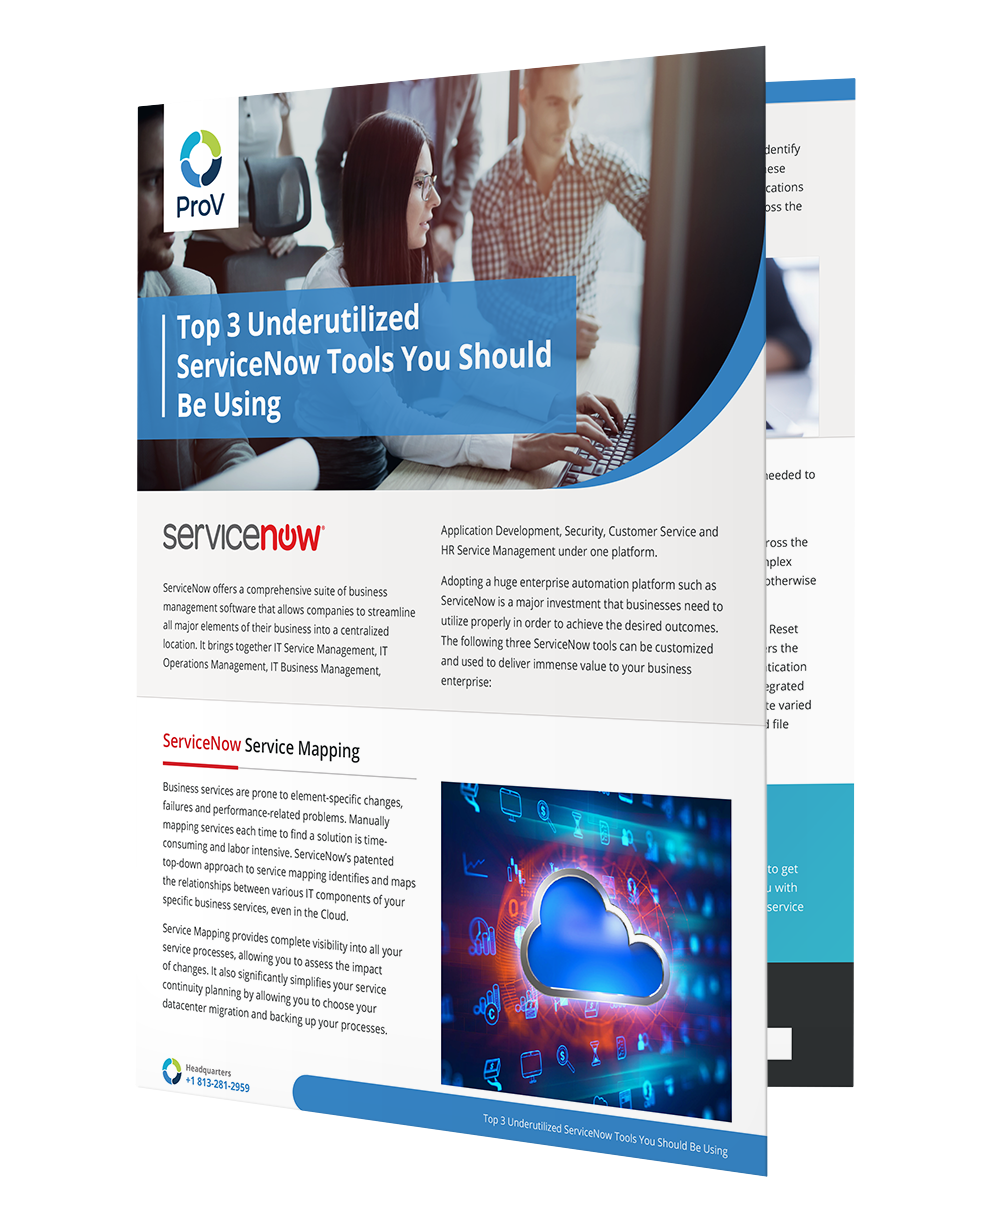 top-3-underutilized-servicenow-tools-cover